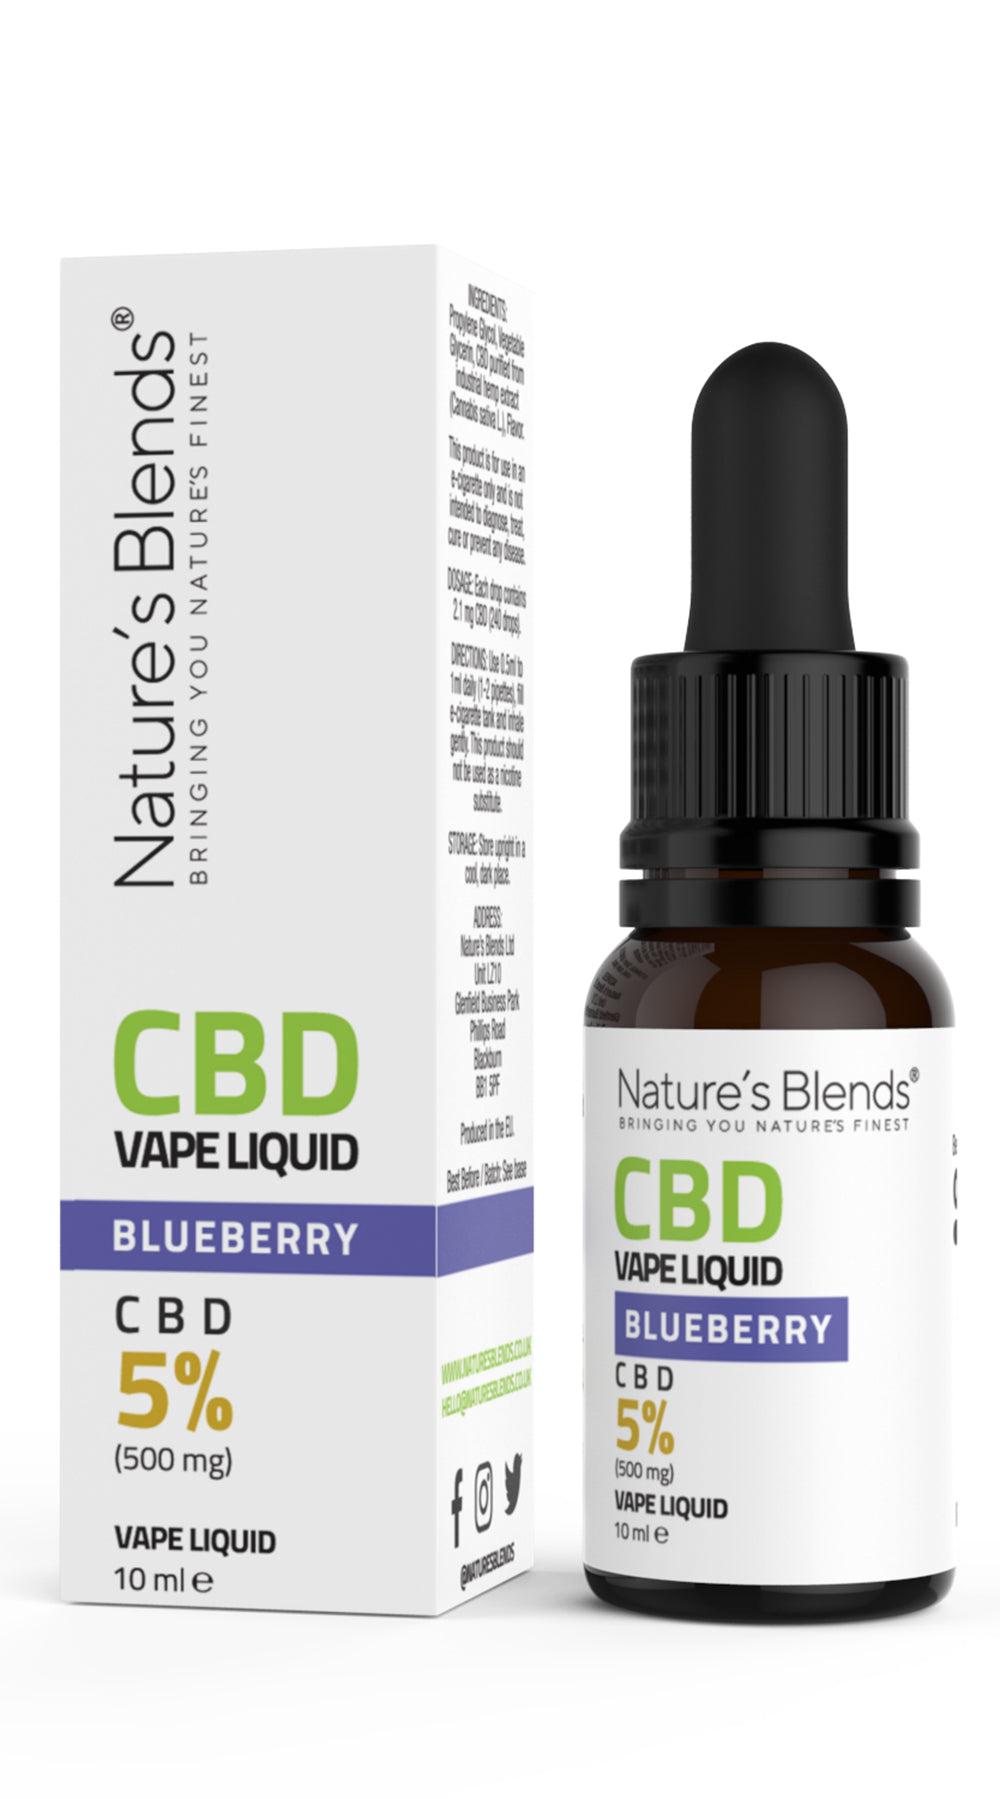 A 10ml bottle of 500mg cbd vape blueberry flavour along side natures blends packaging